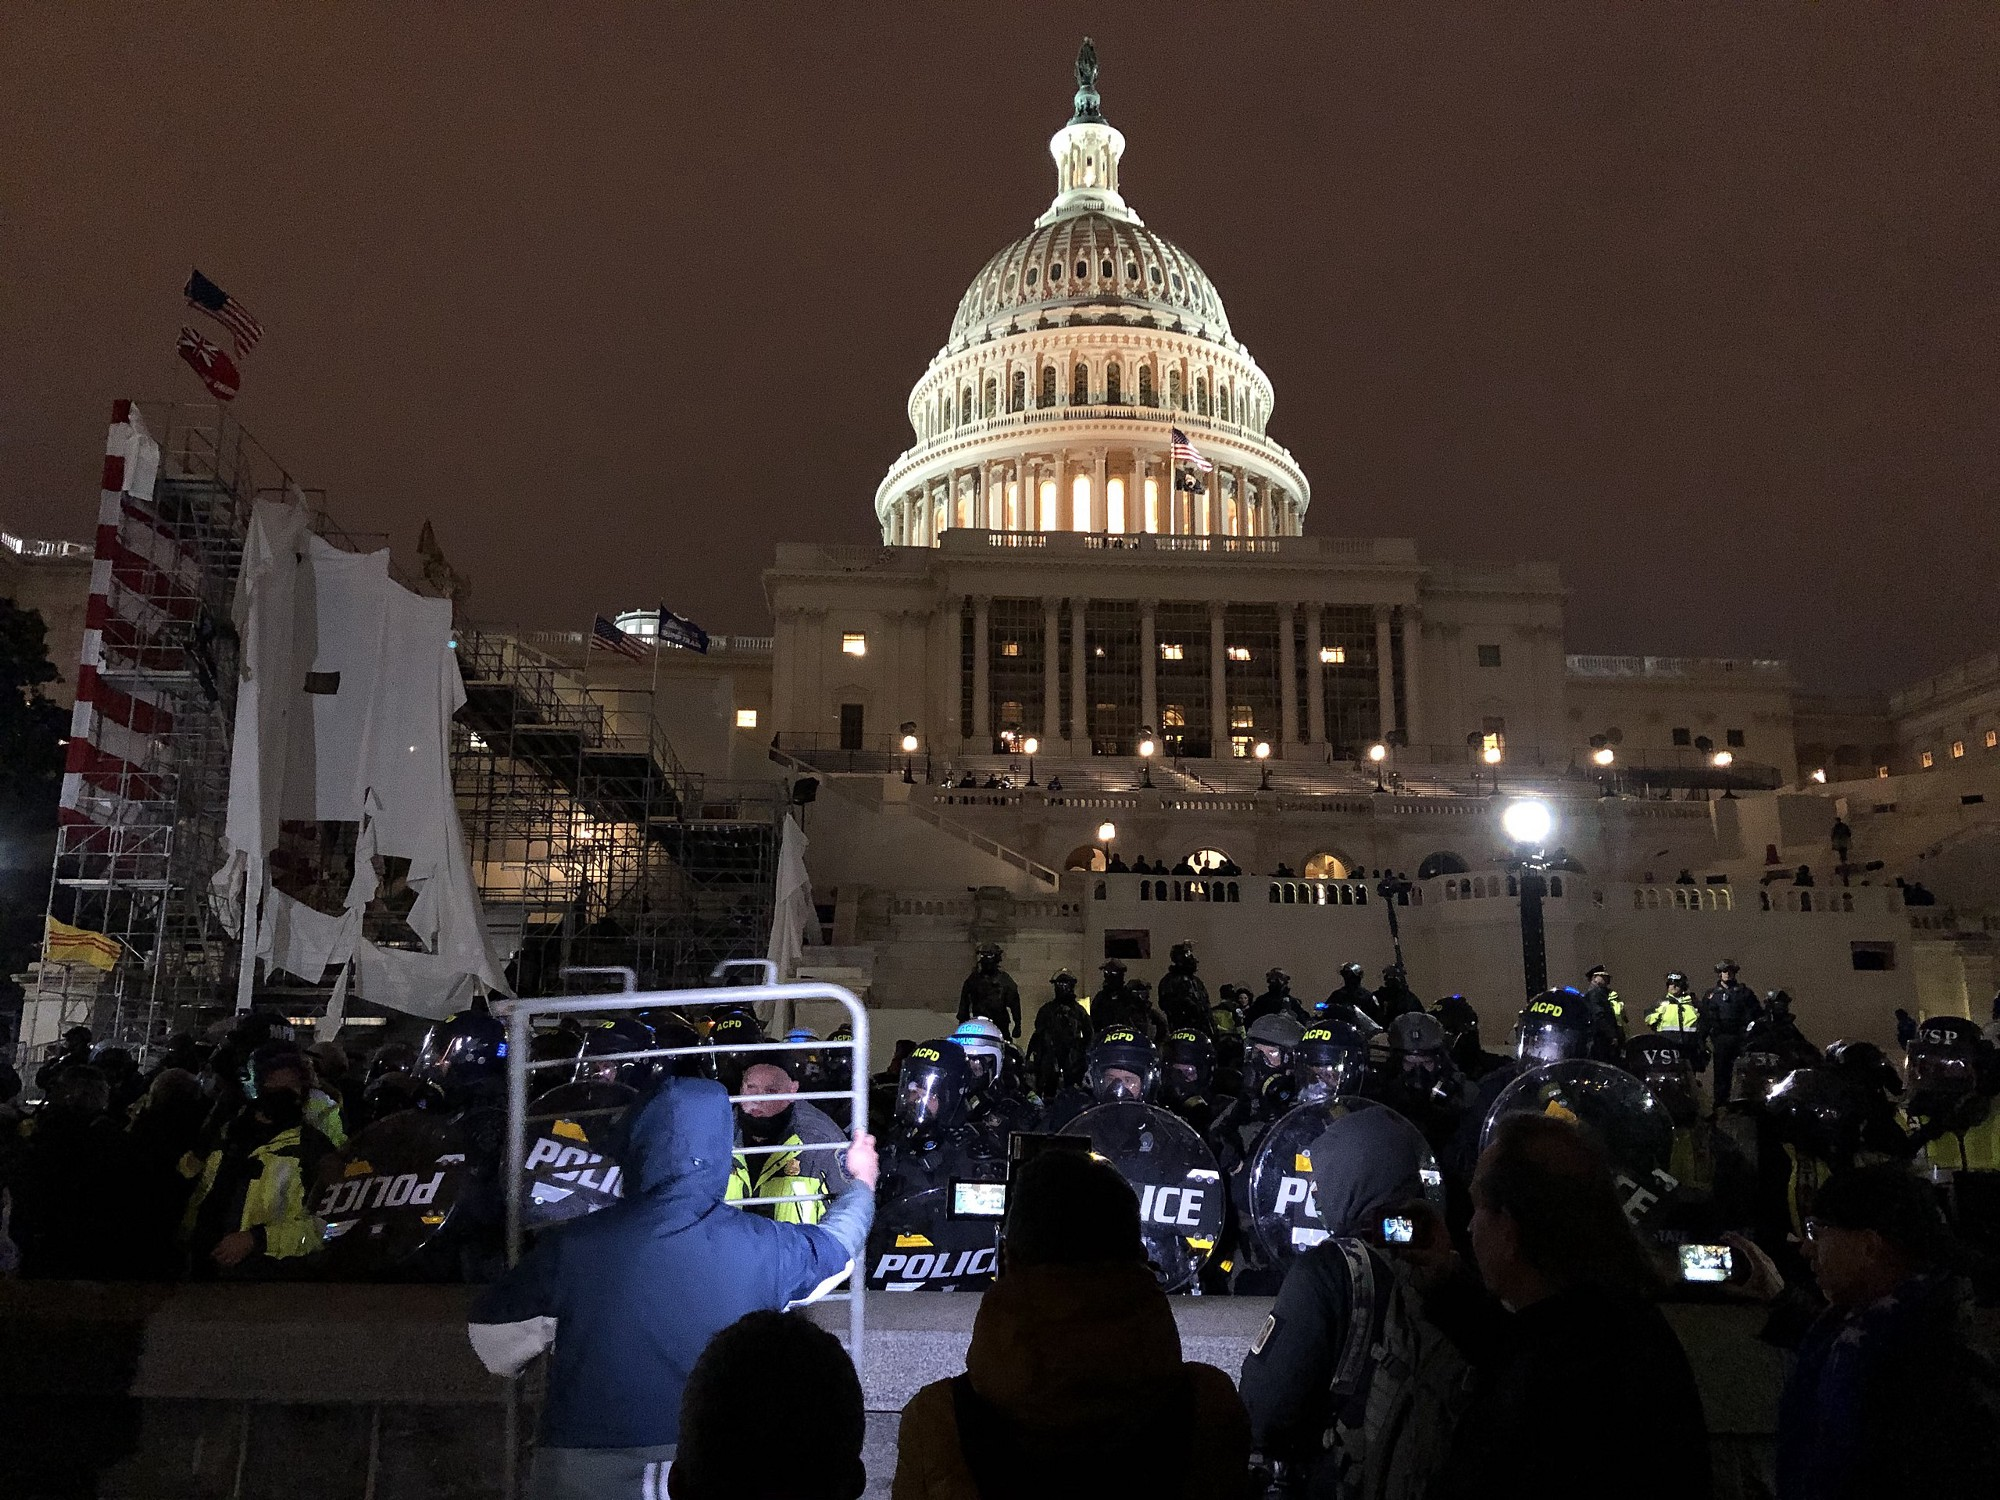 Image ID: A line of Capitol police officers with round riot shields stands in front of the Capitol building at night. On the other side there is a crowd taking pictures with their cell phones. A man in front holds up a piece of metal temporary police fence. SEO Title: Democrats are presenting Capitol cops as 'heroes' as a backdoor means of rehabilitating police. Keywords: Joe Biden, Capitol riots, insurrection, January 6, Democrats, Donald Trump